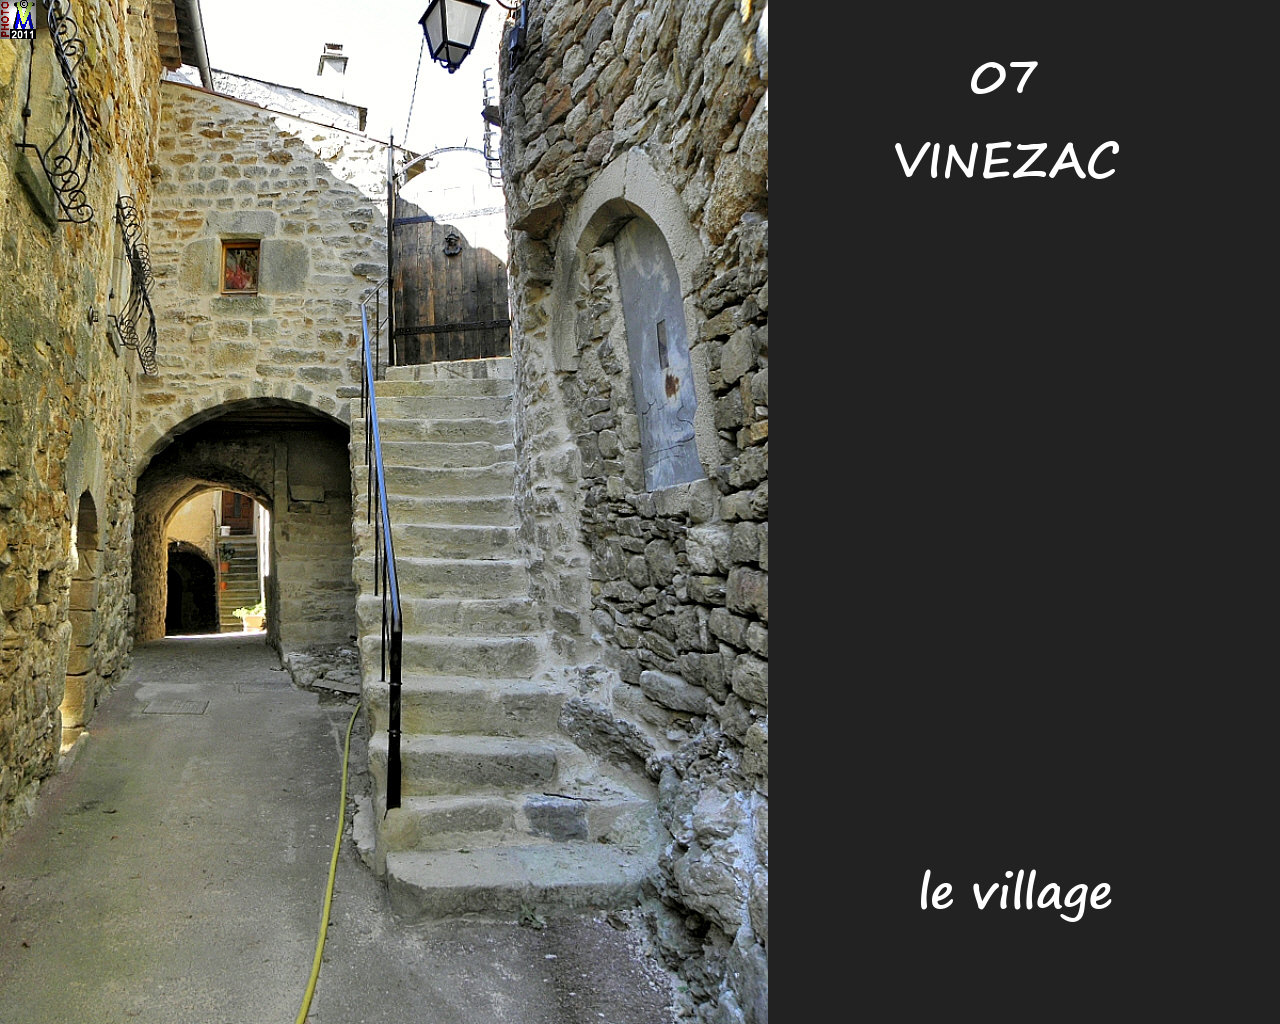 07VINEZAC_village_158.jpg